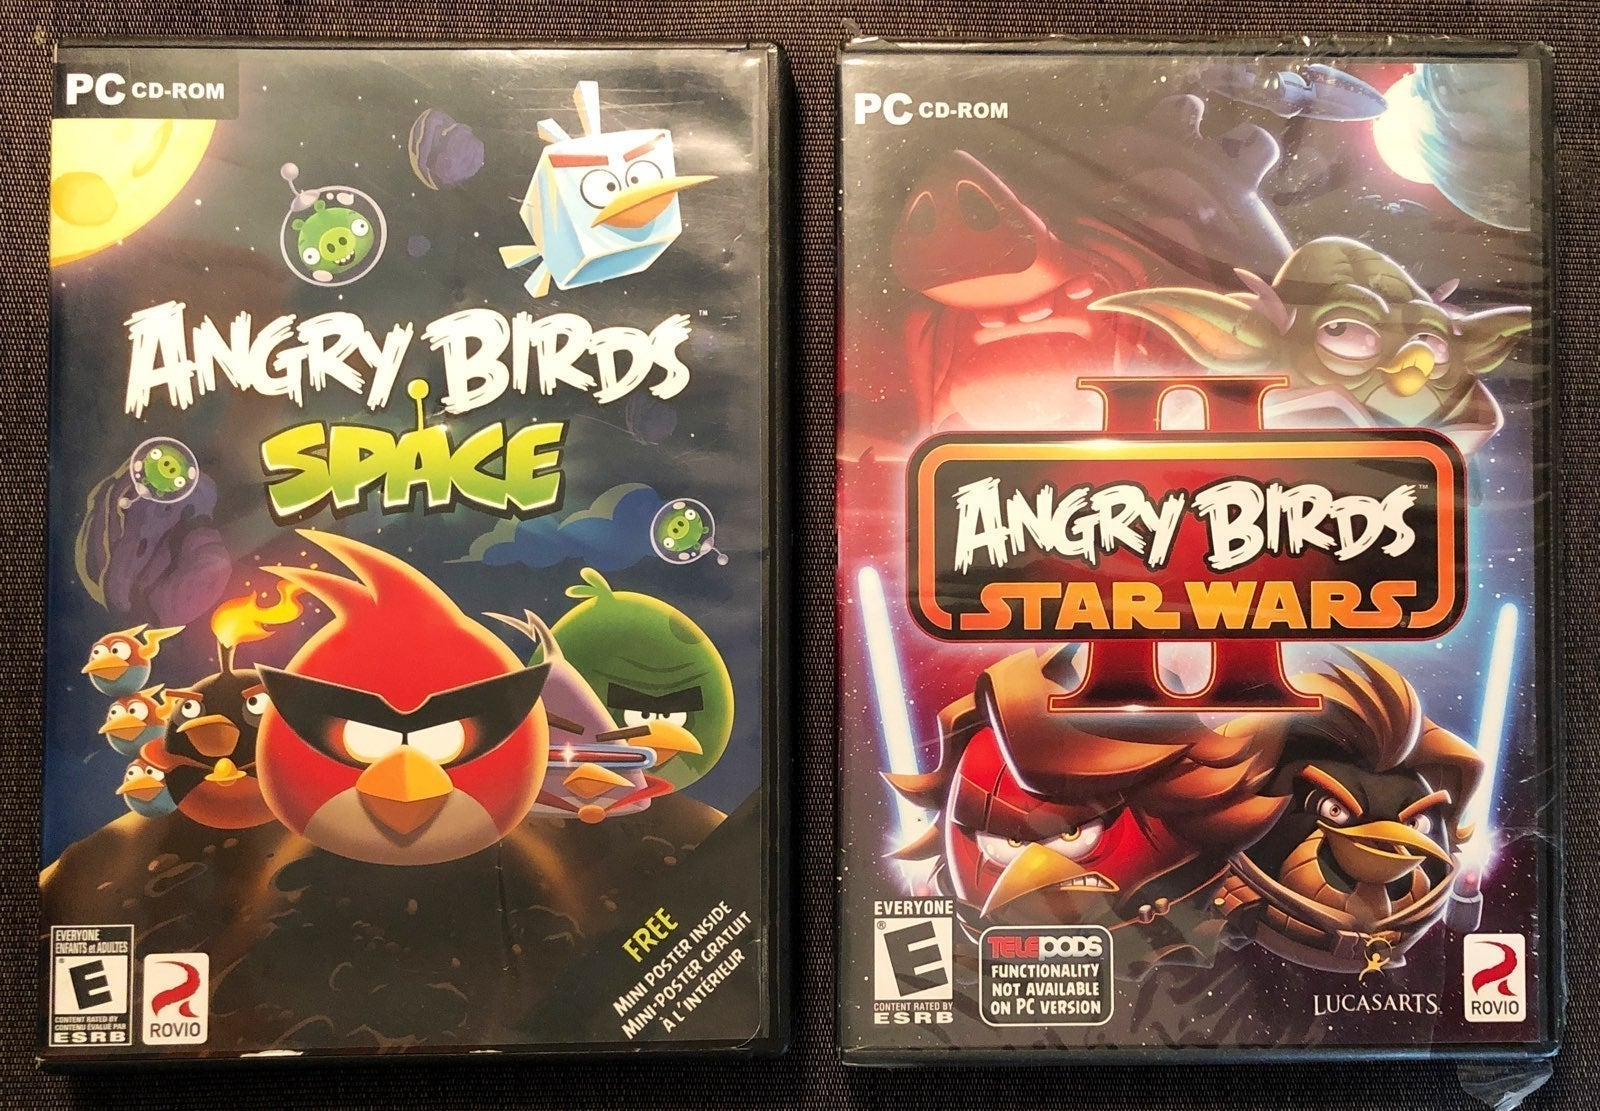 Angry Birds Star Wars/Space PC games